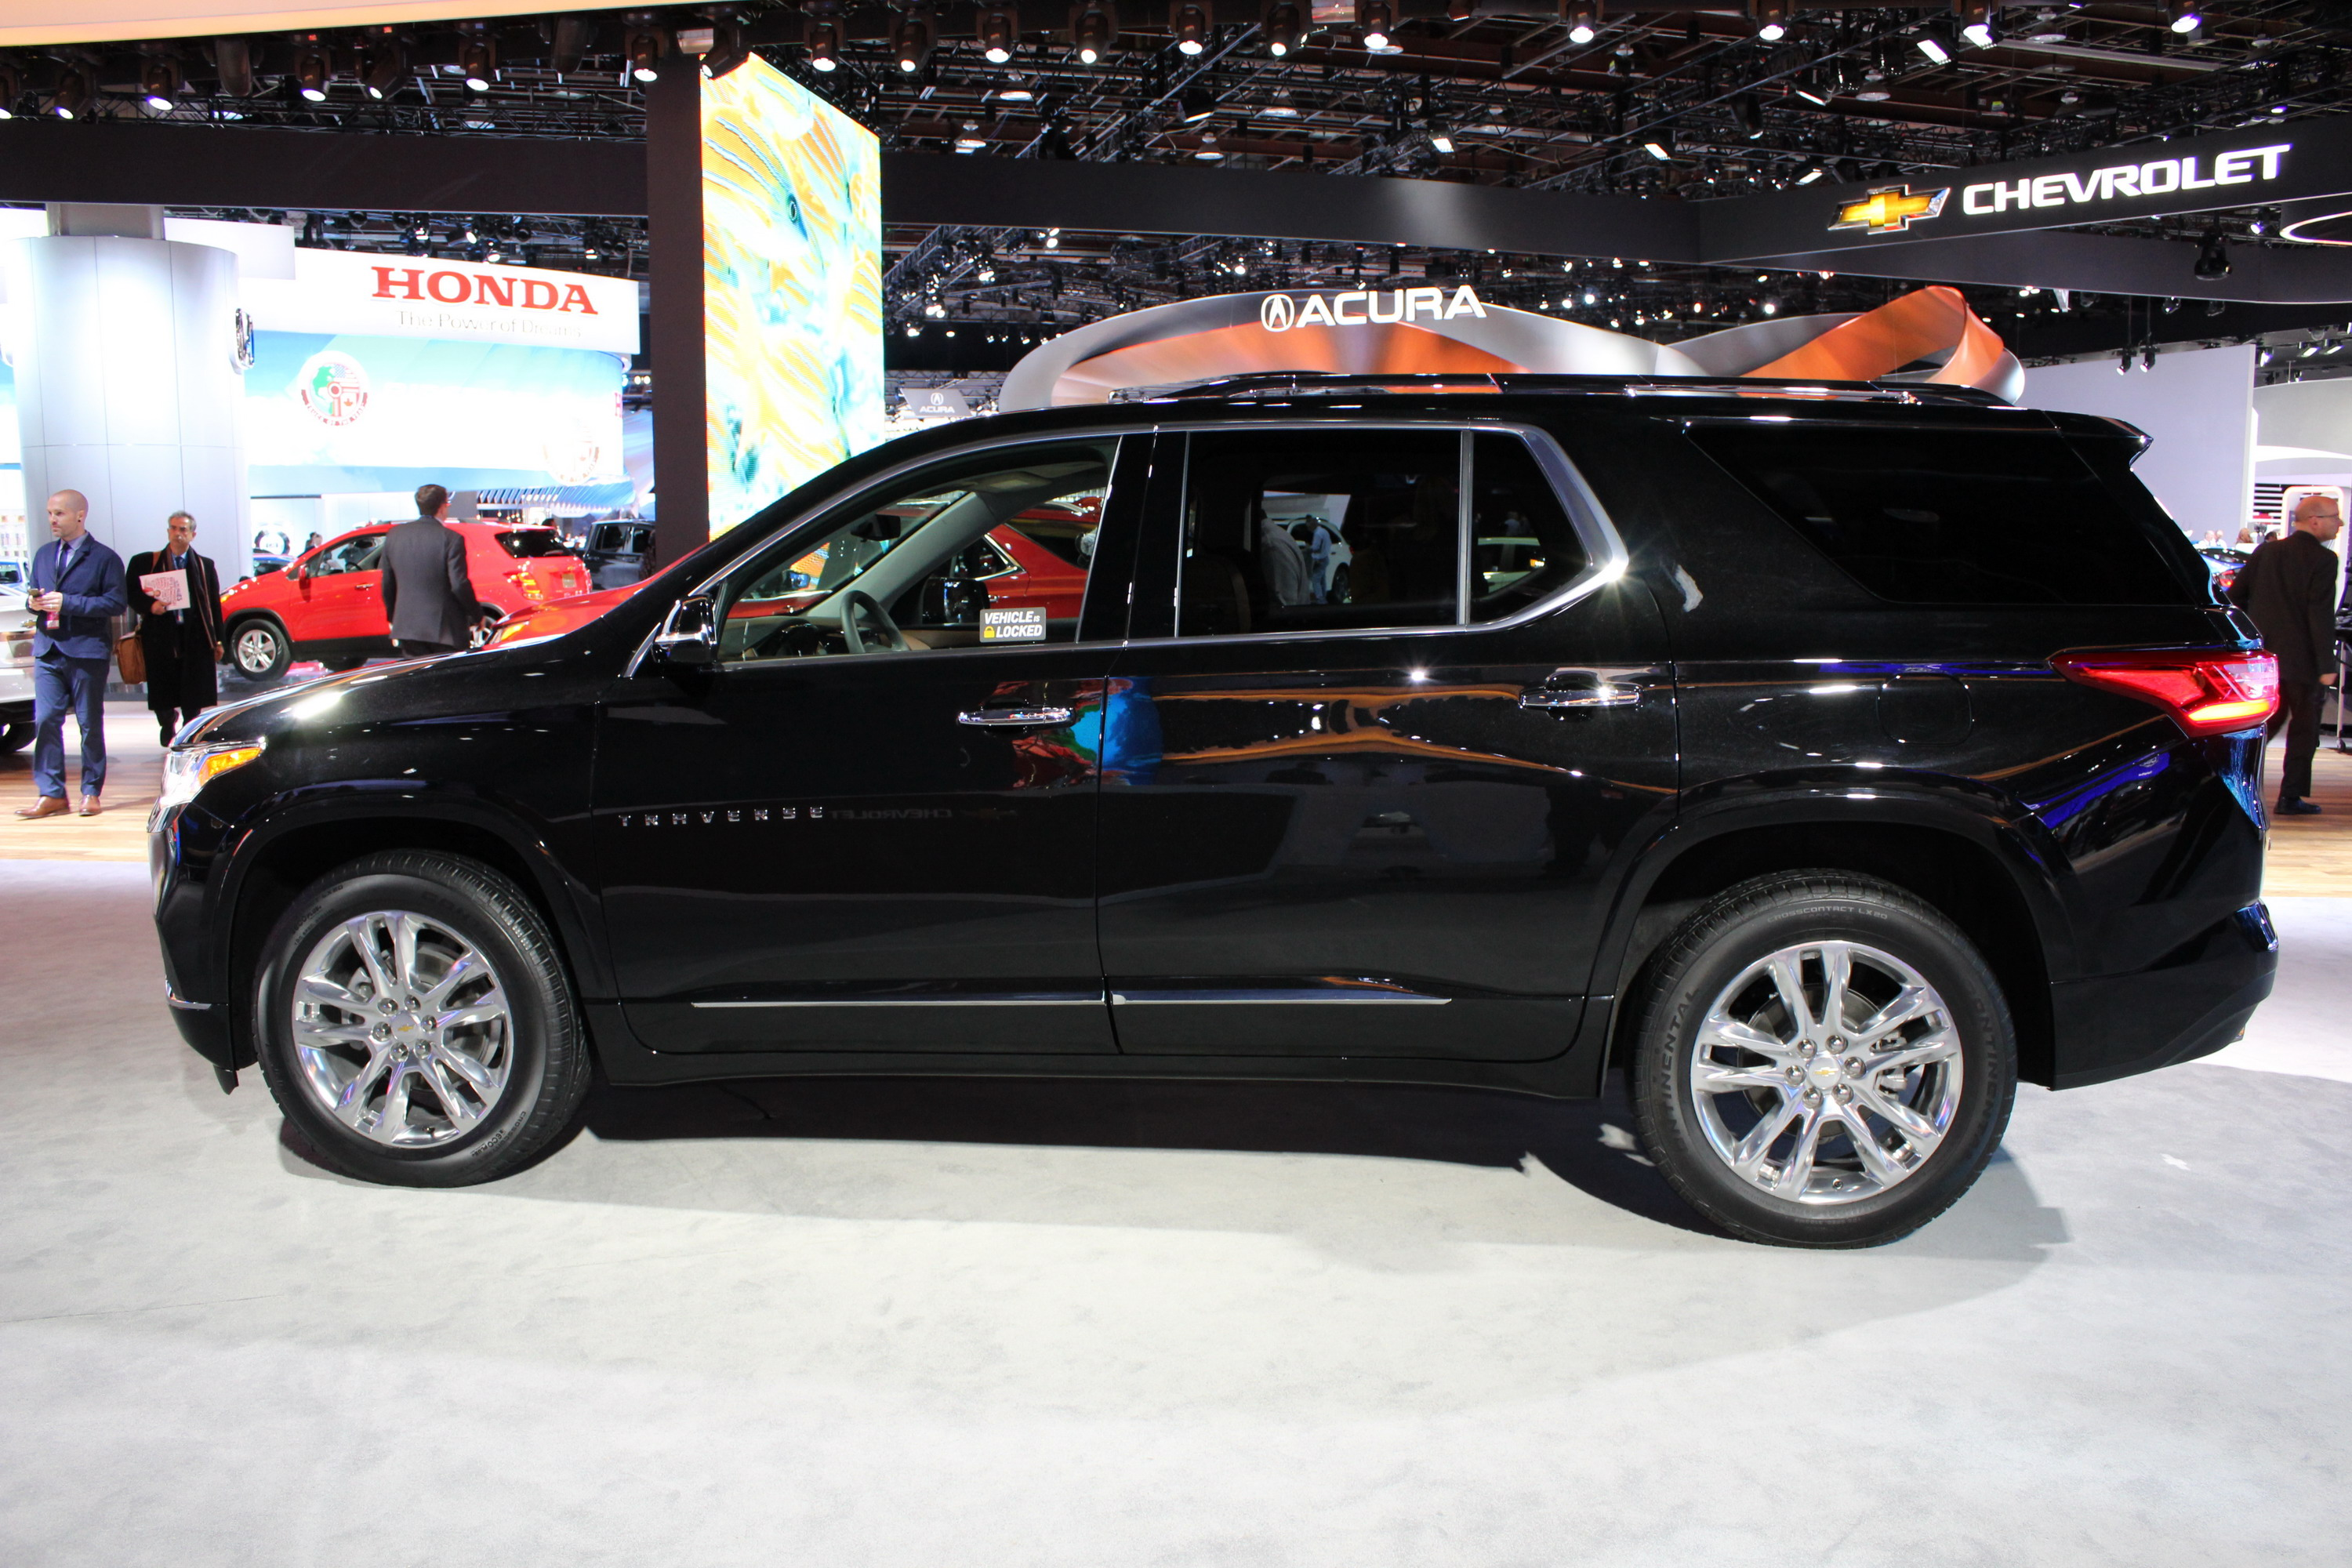 2018 Chevrolet Traverse Review - Top Speed